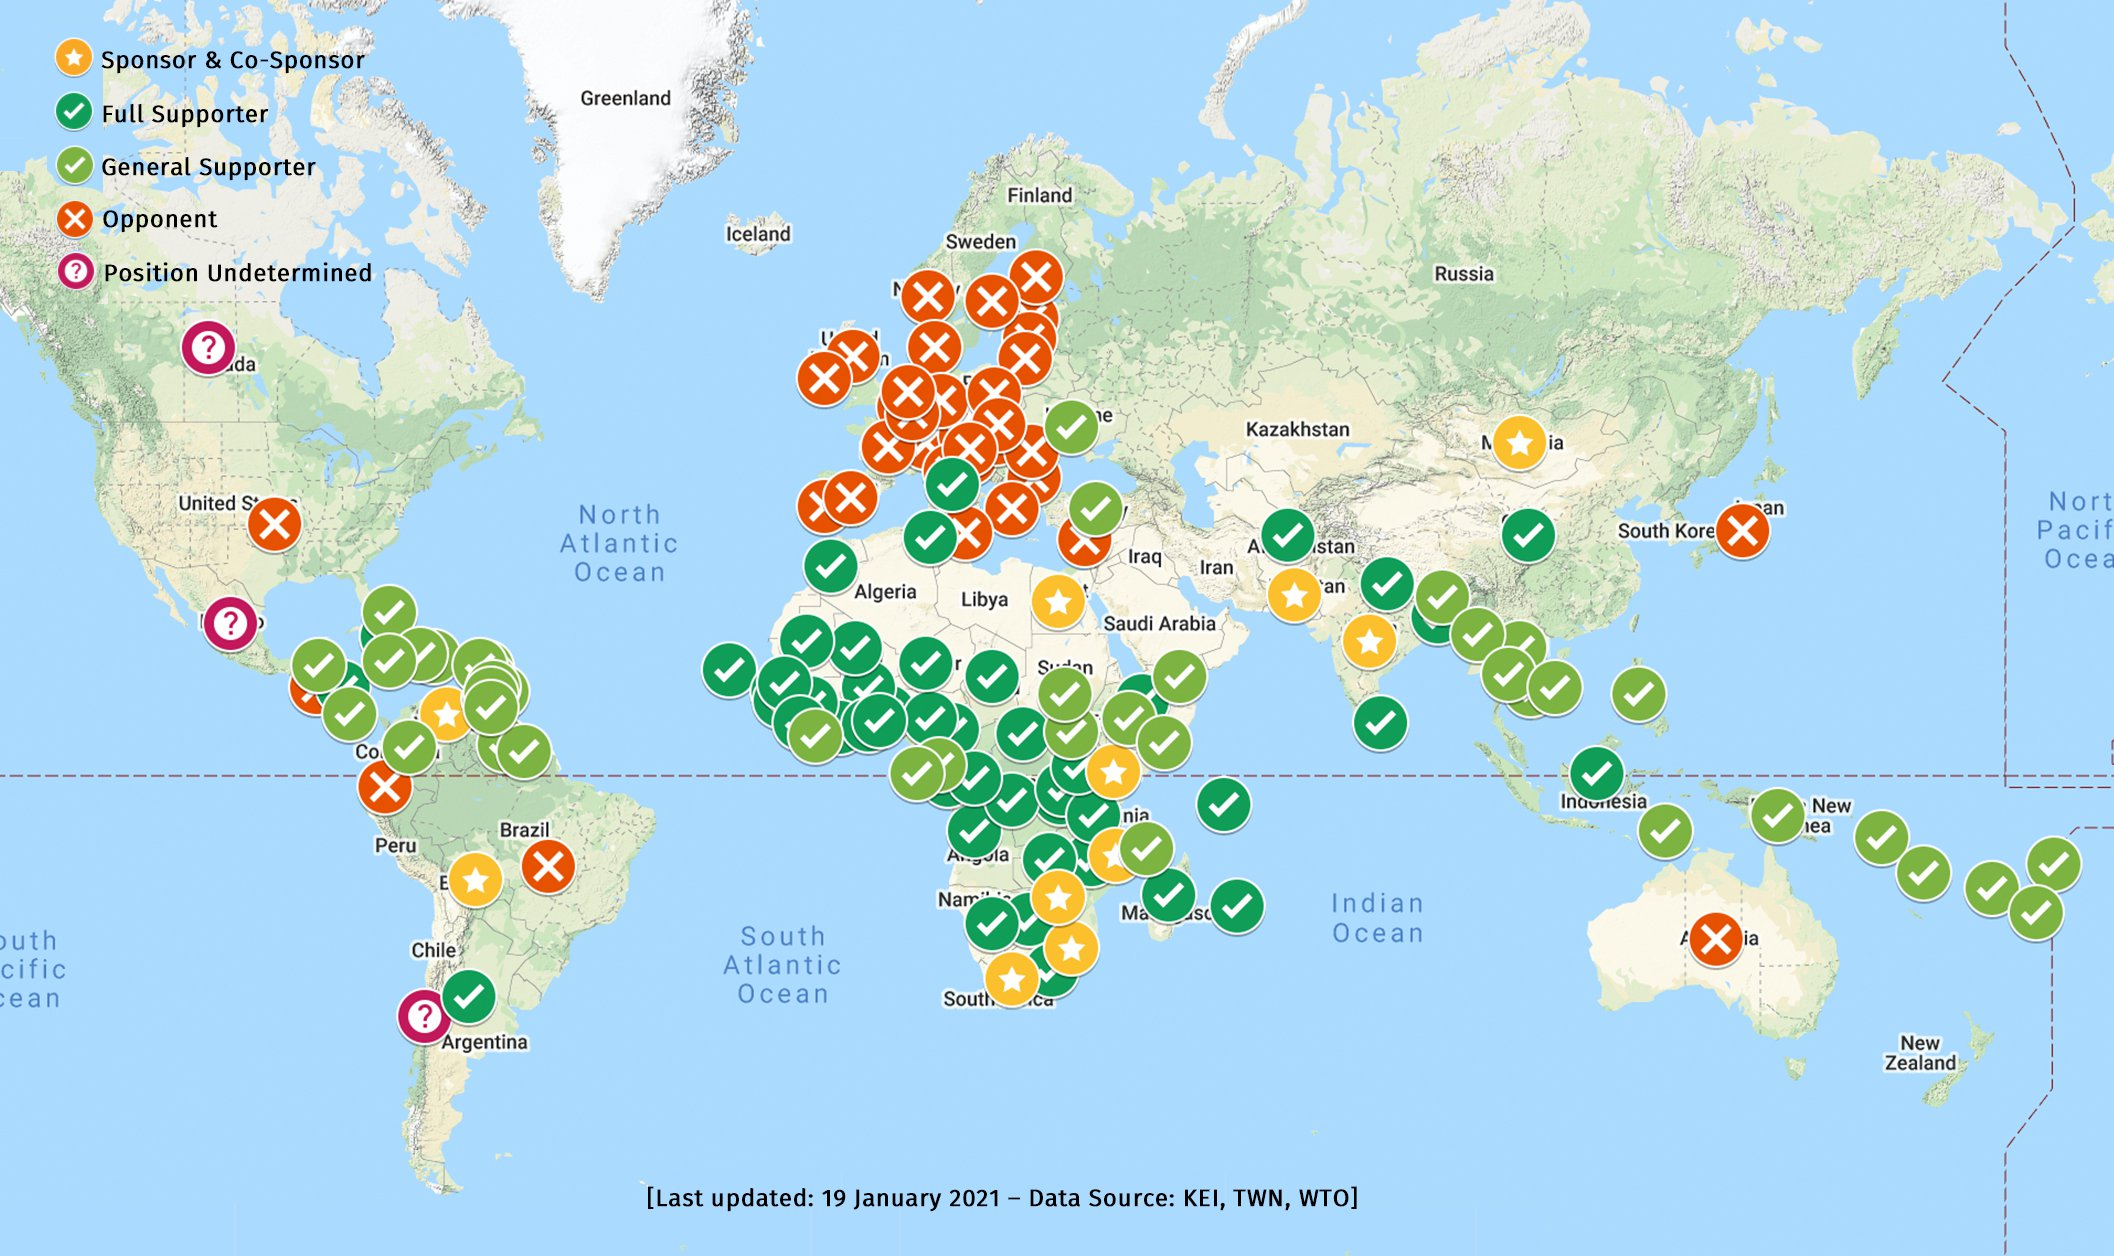 No Patents_TRIPS-map_19January2021.jpg